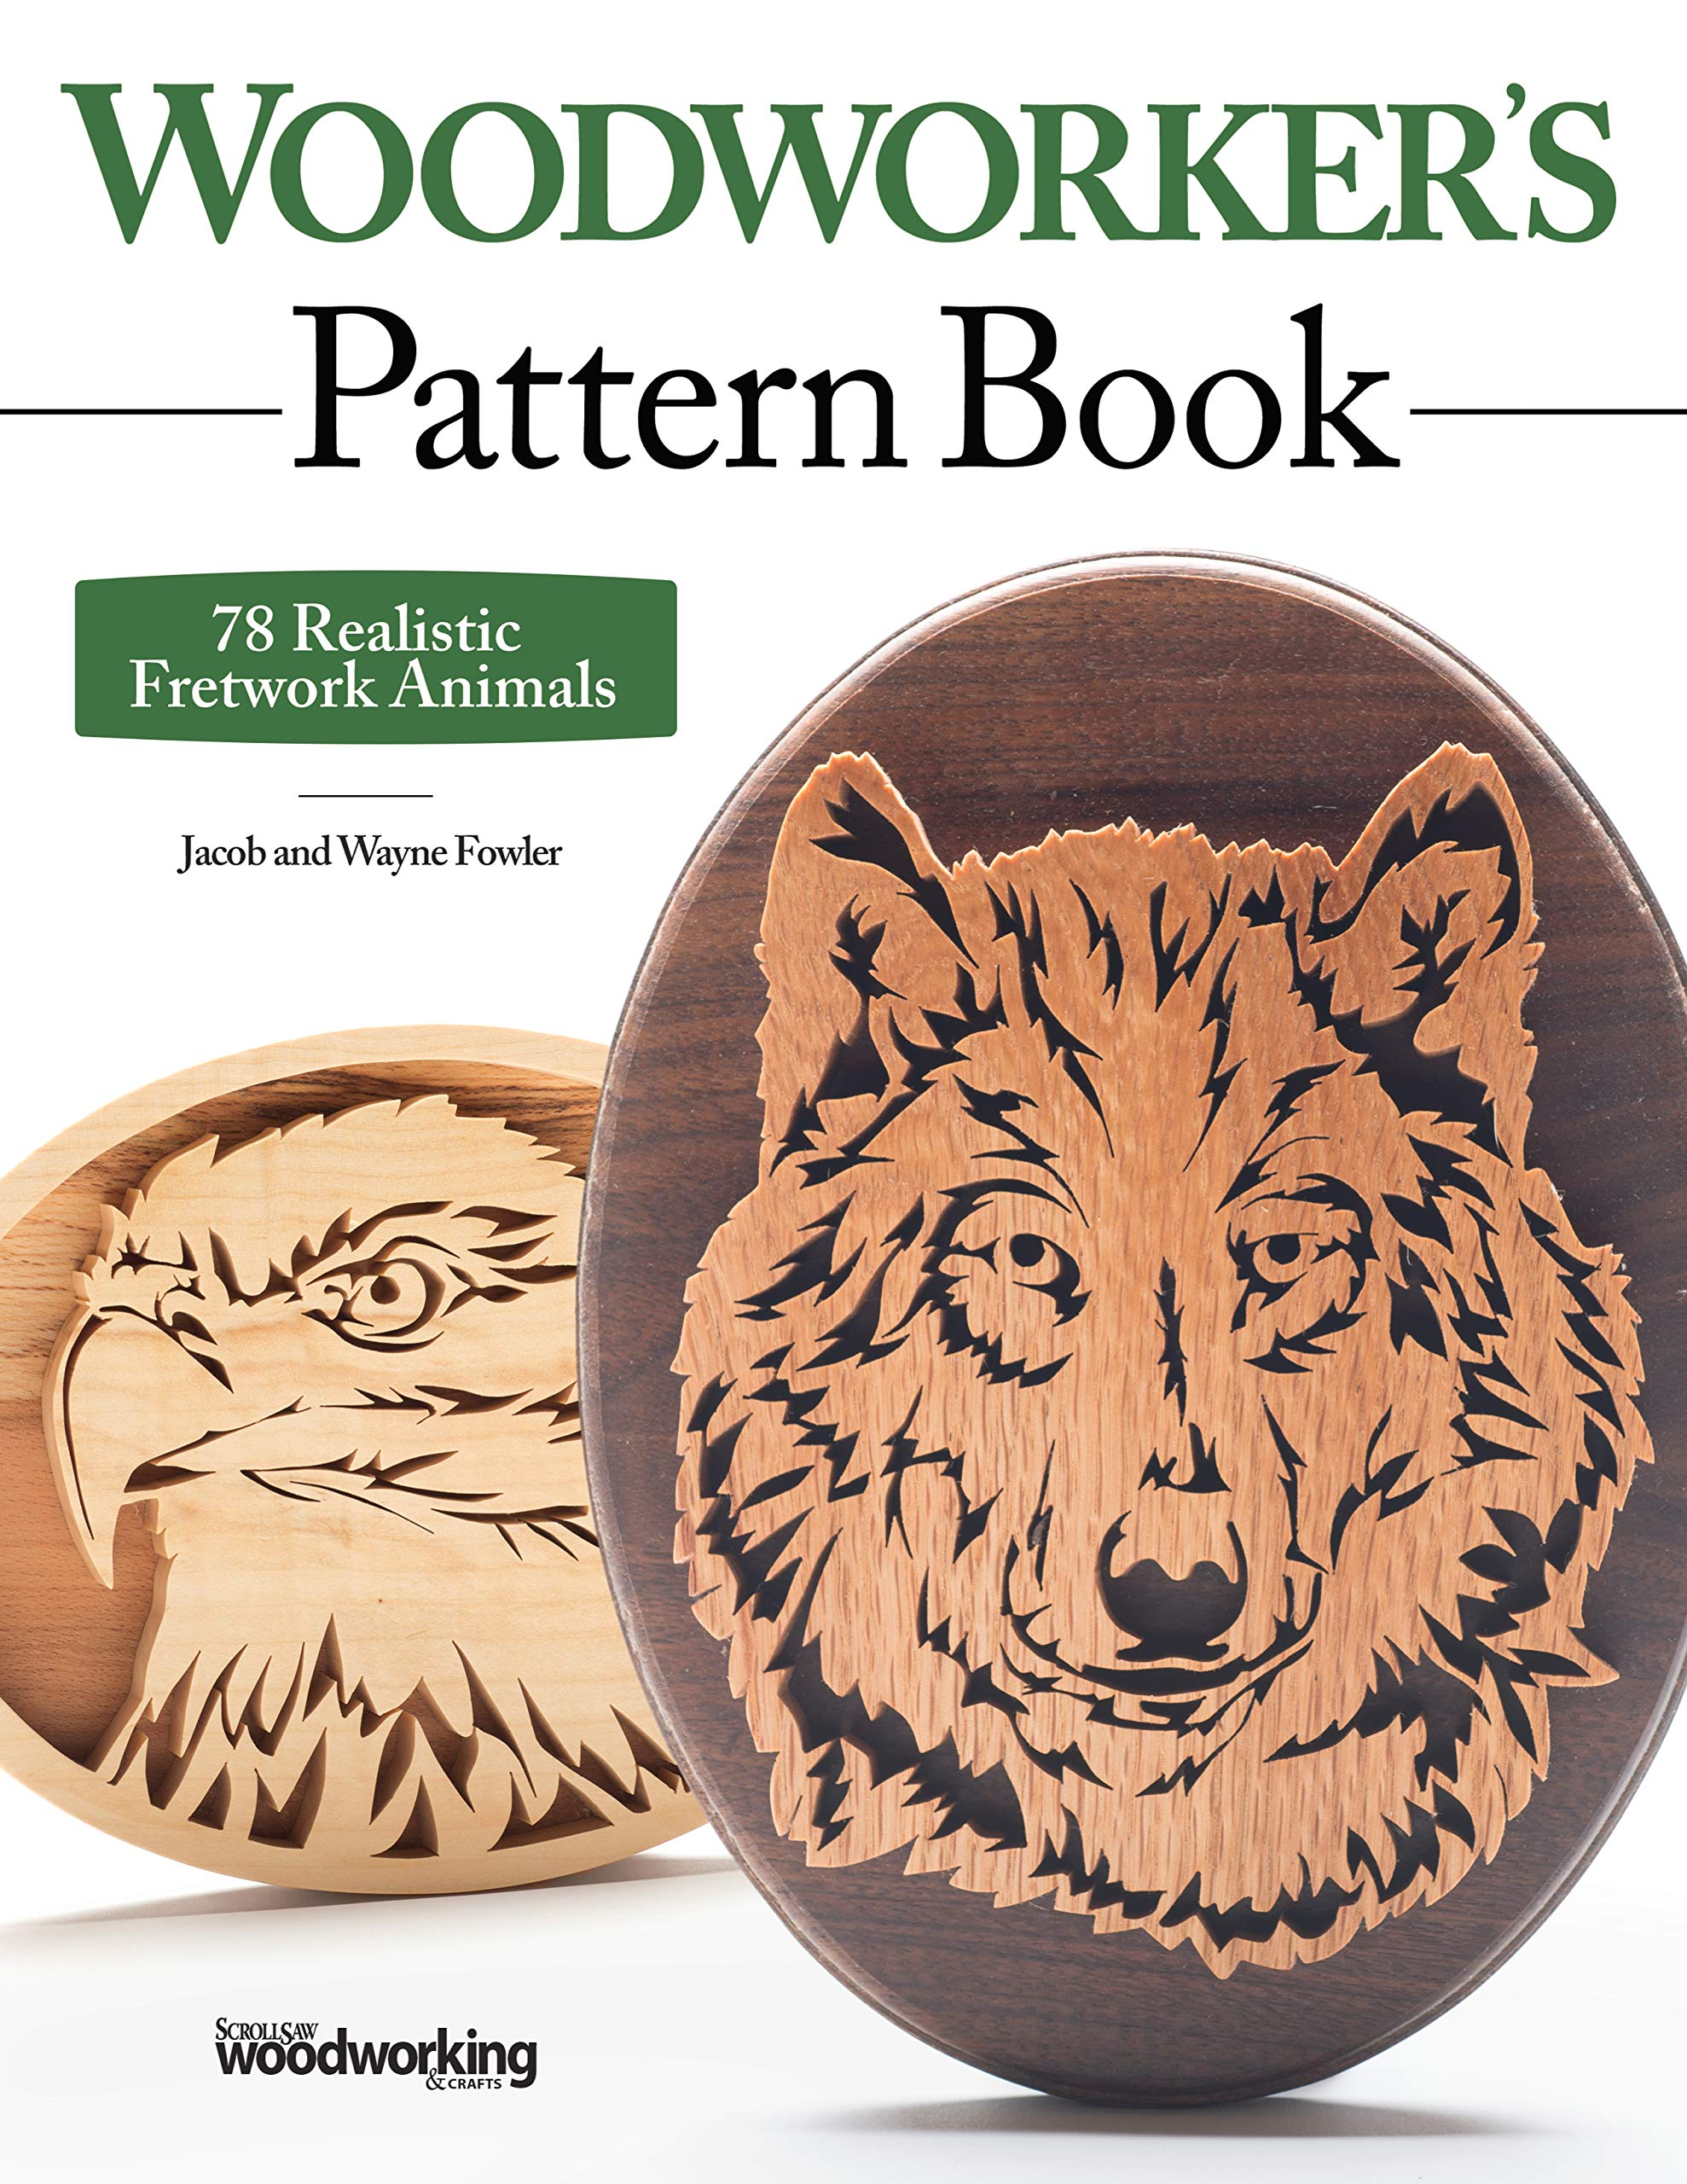 06007877218a Woodworker's Pattern Book: 78 Realistic Fretwork Animals (Fox Chapel  Publishing) Detailed, Ready-to-Use Wildlife Patterns for Your Scroll Saw,  Expert Tips ...